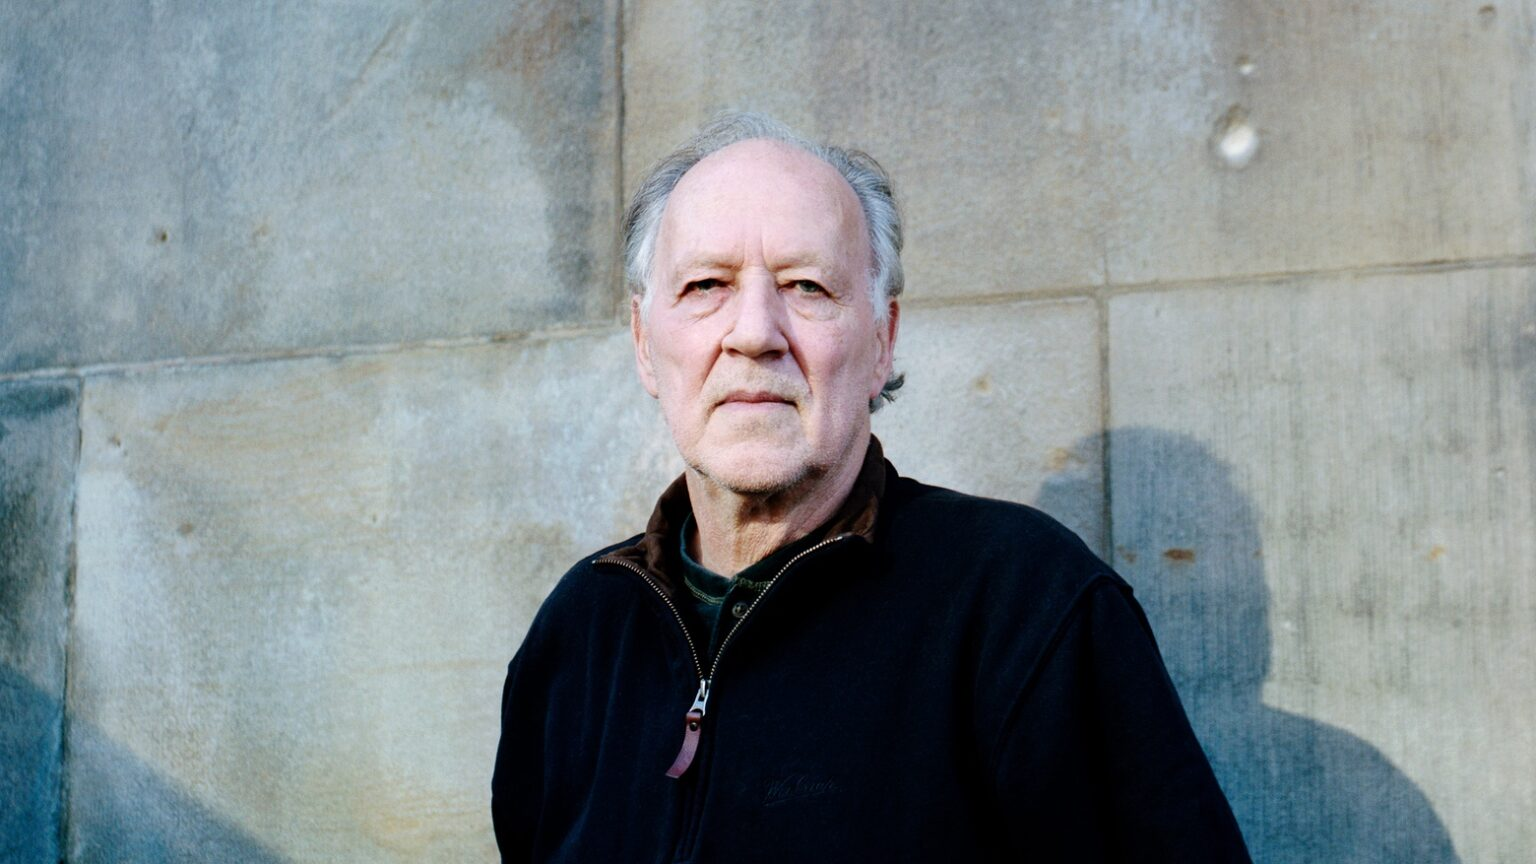 Werner Herzog is one of the greatest living filmmakers, and he's co-directing Fireball for Apple TV+.